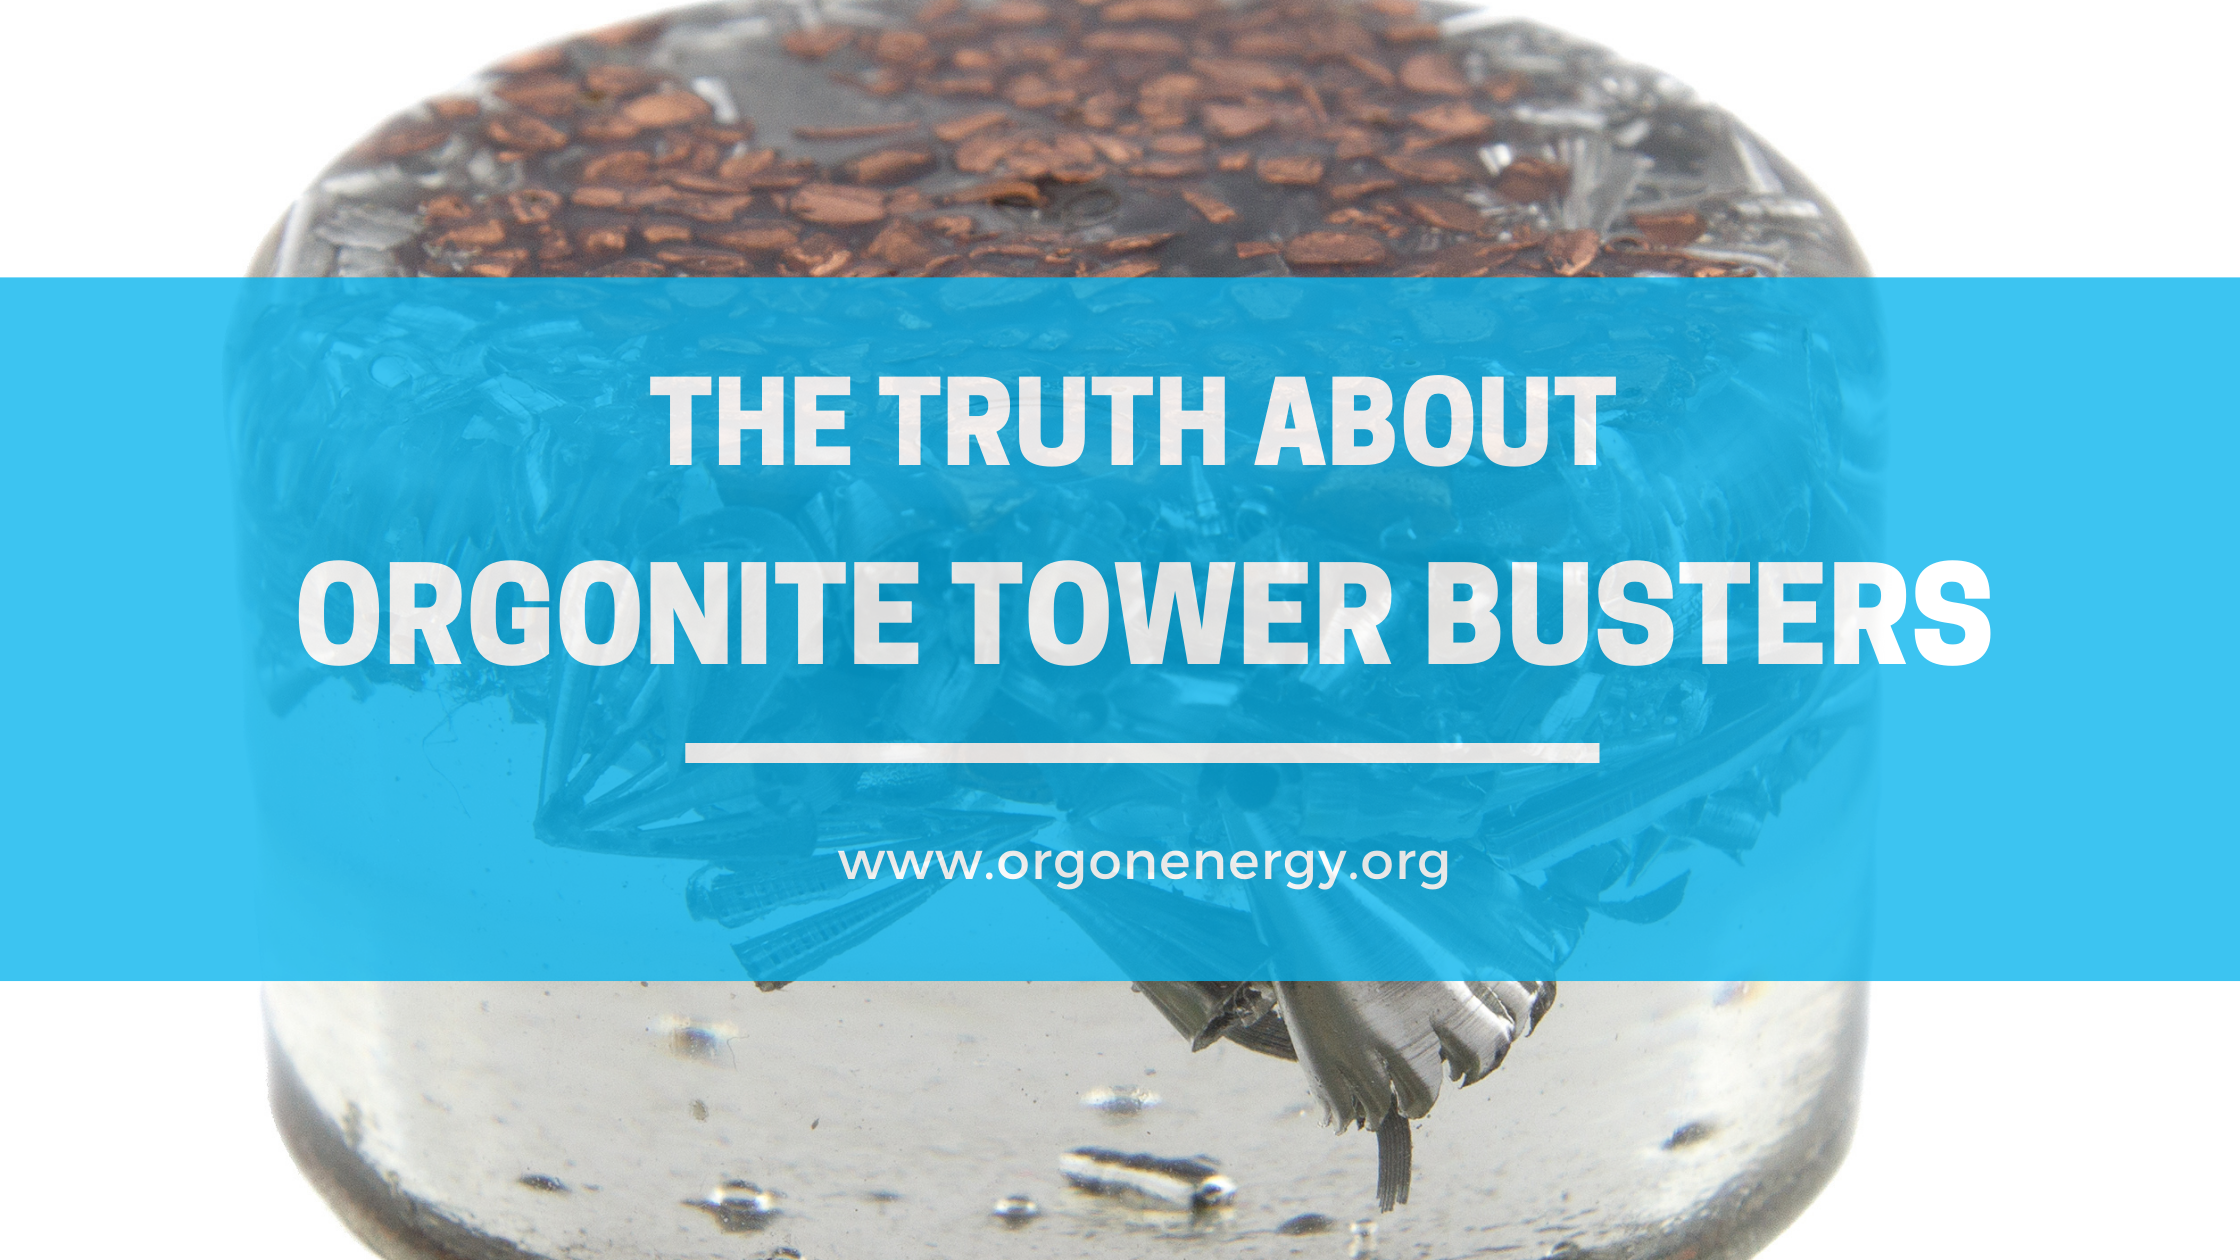 The Truth about Orgonite Tower Busters